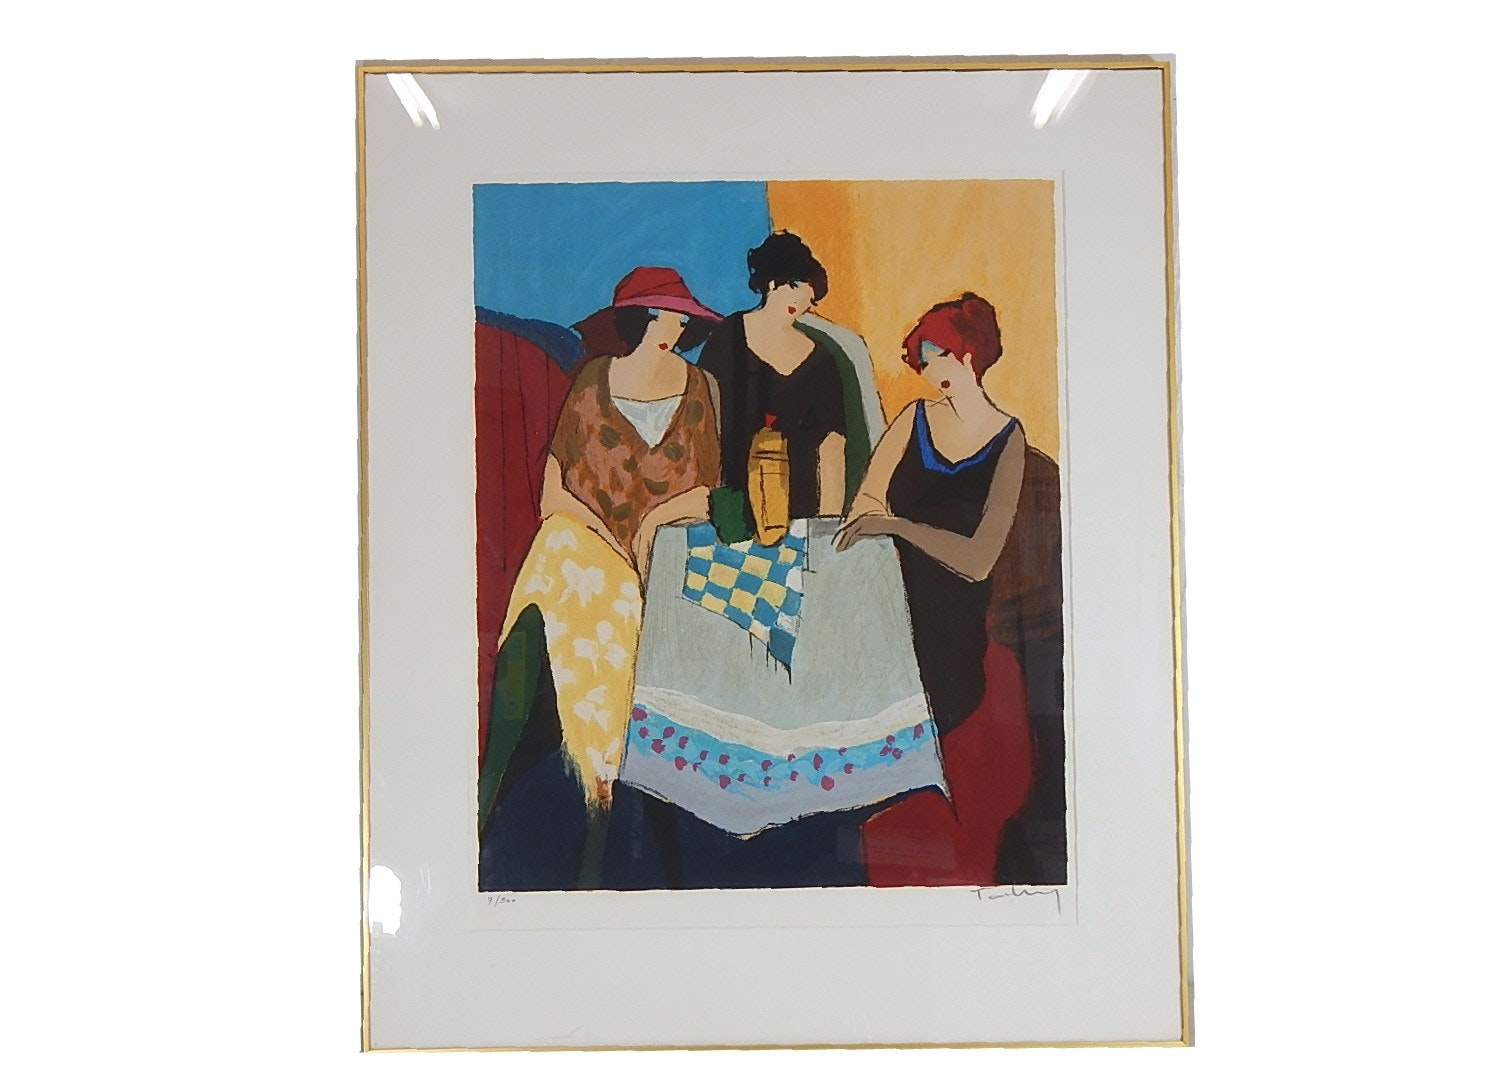 Signed and Numbered Serigraph by Itzchak Tarkay